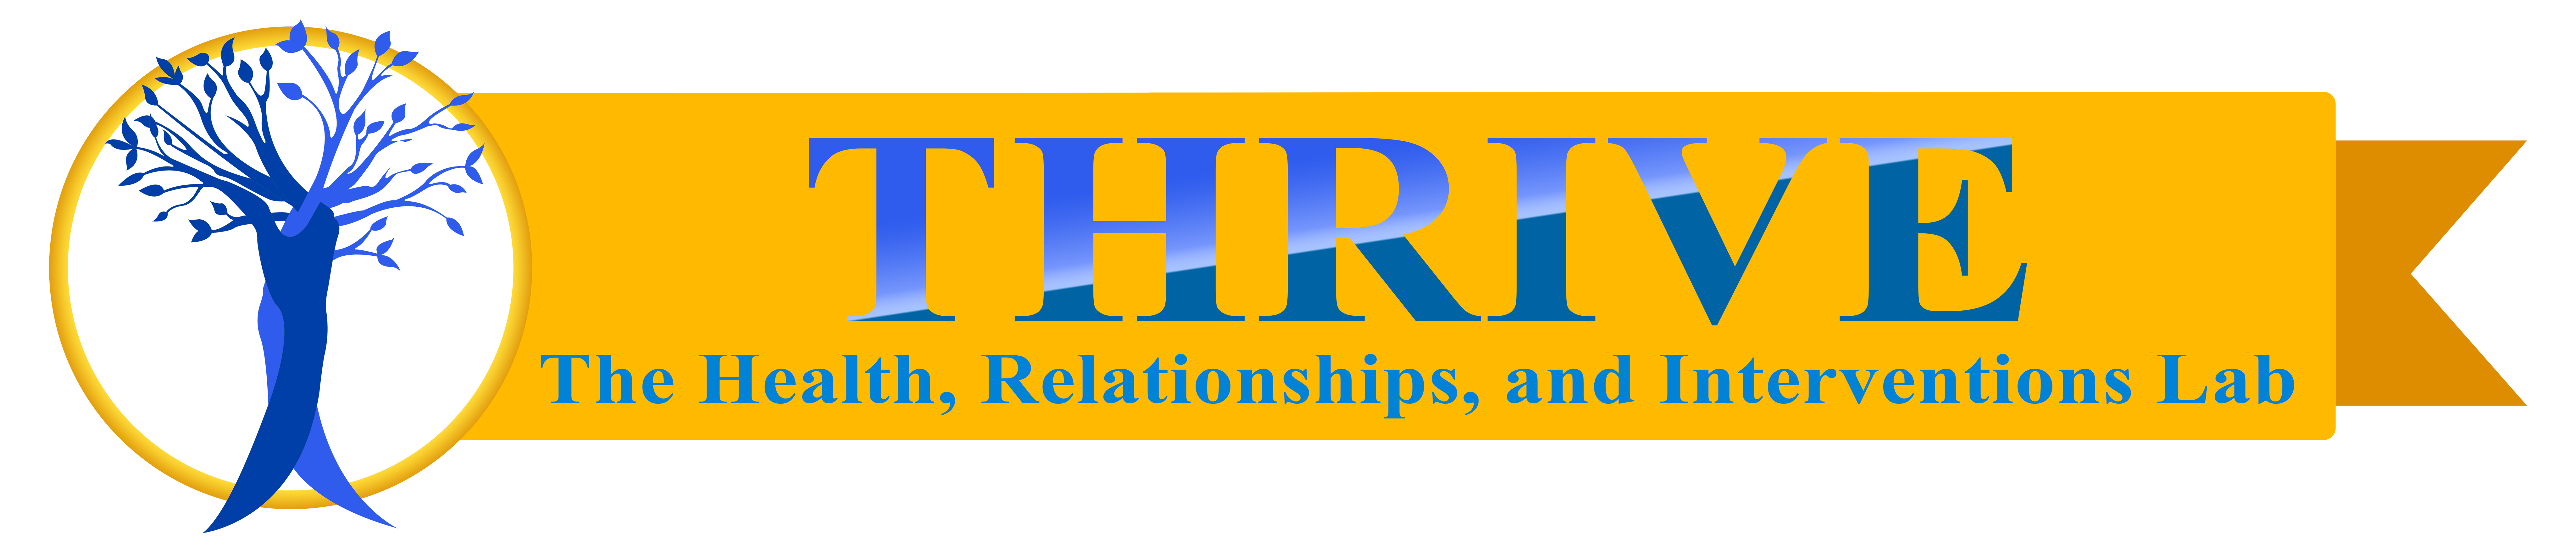 thrive-expanded-logo